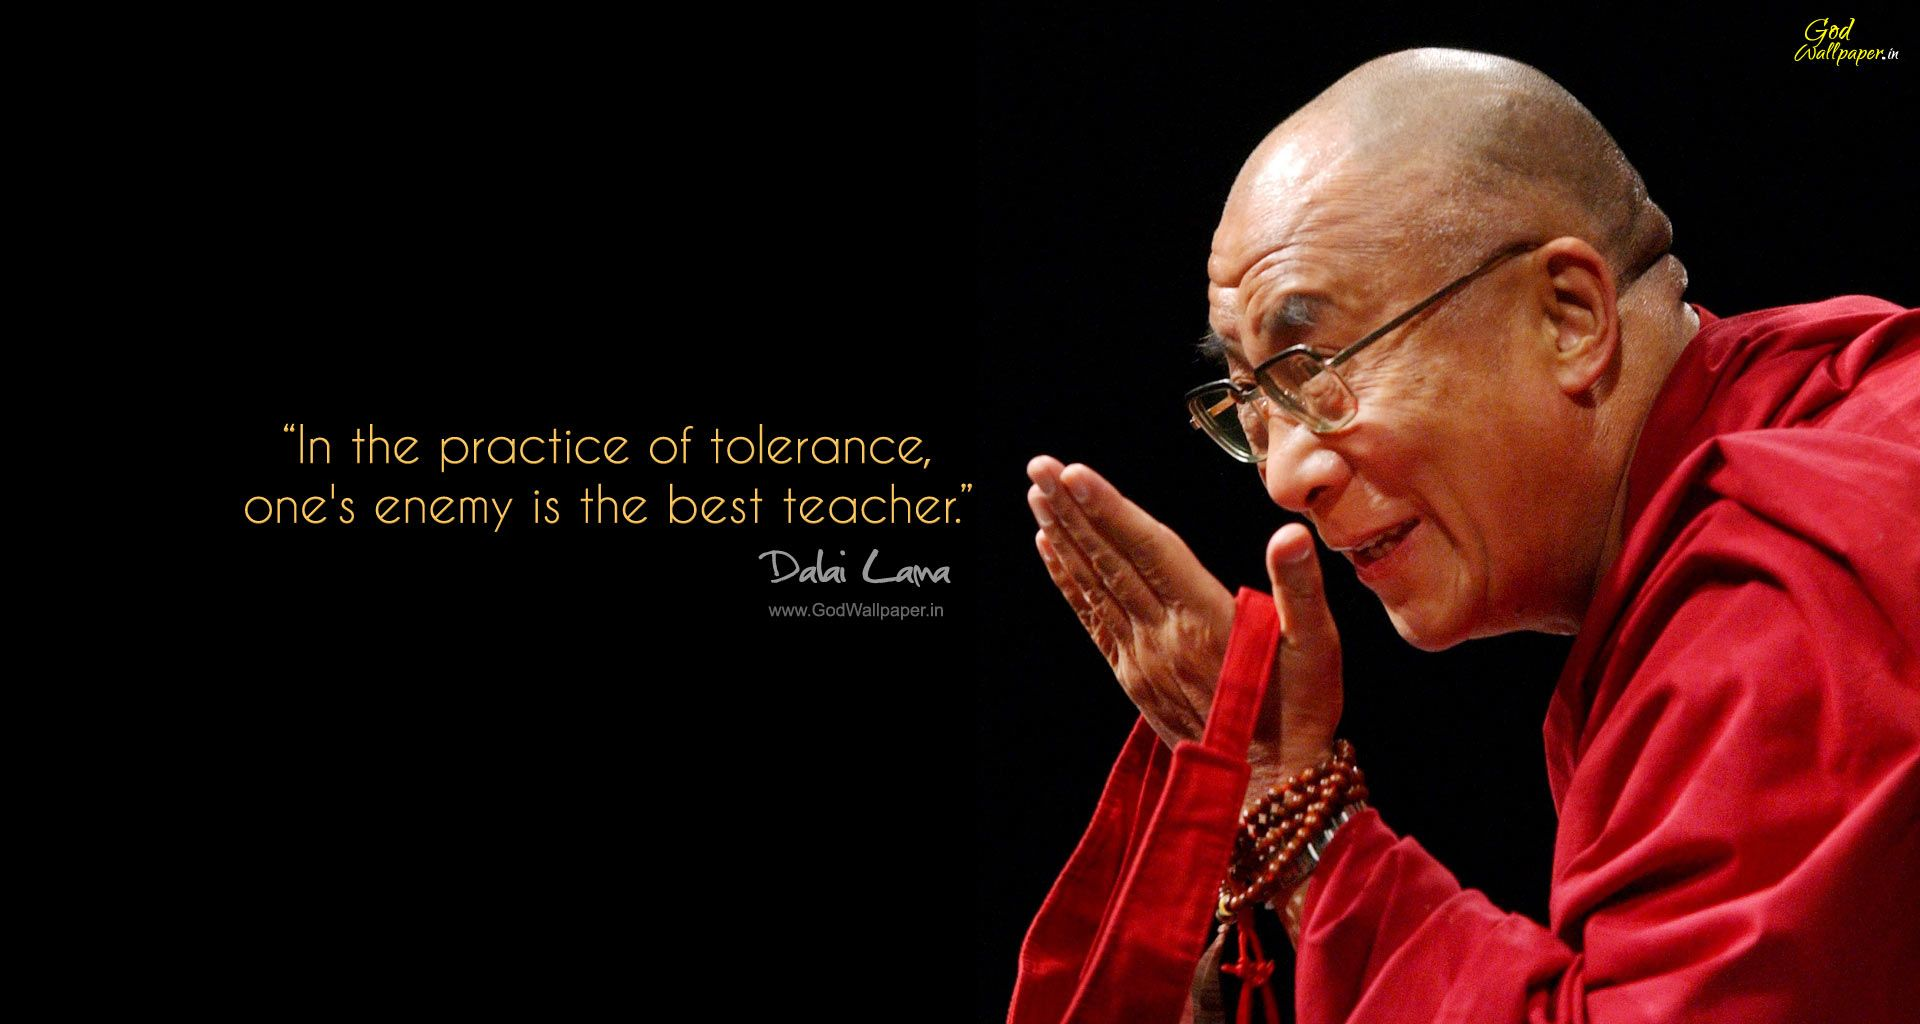 Dalai Lama Quote About Listening